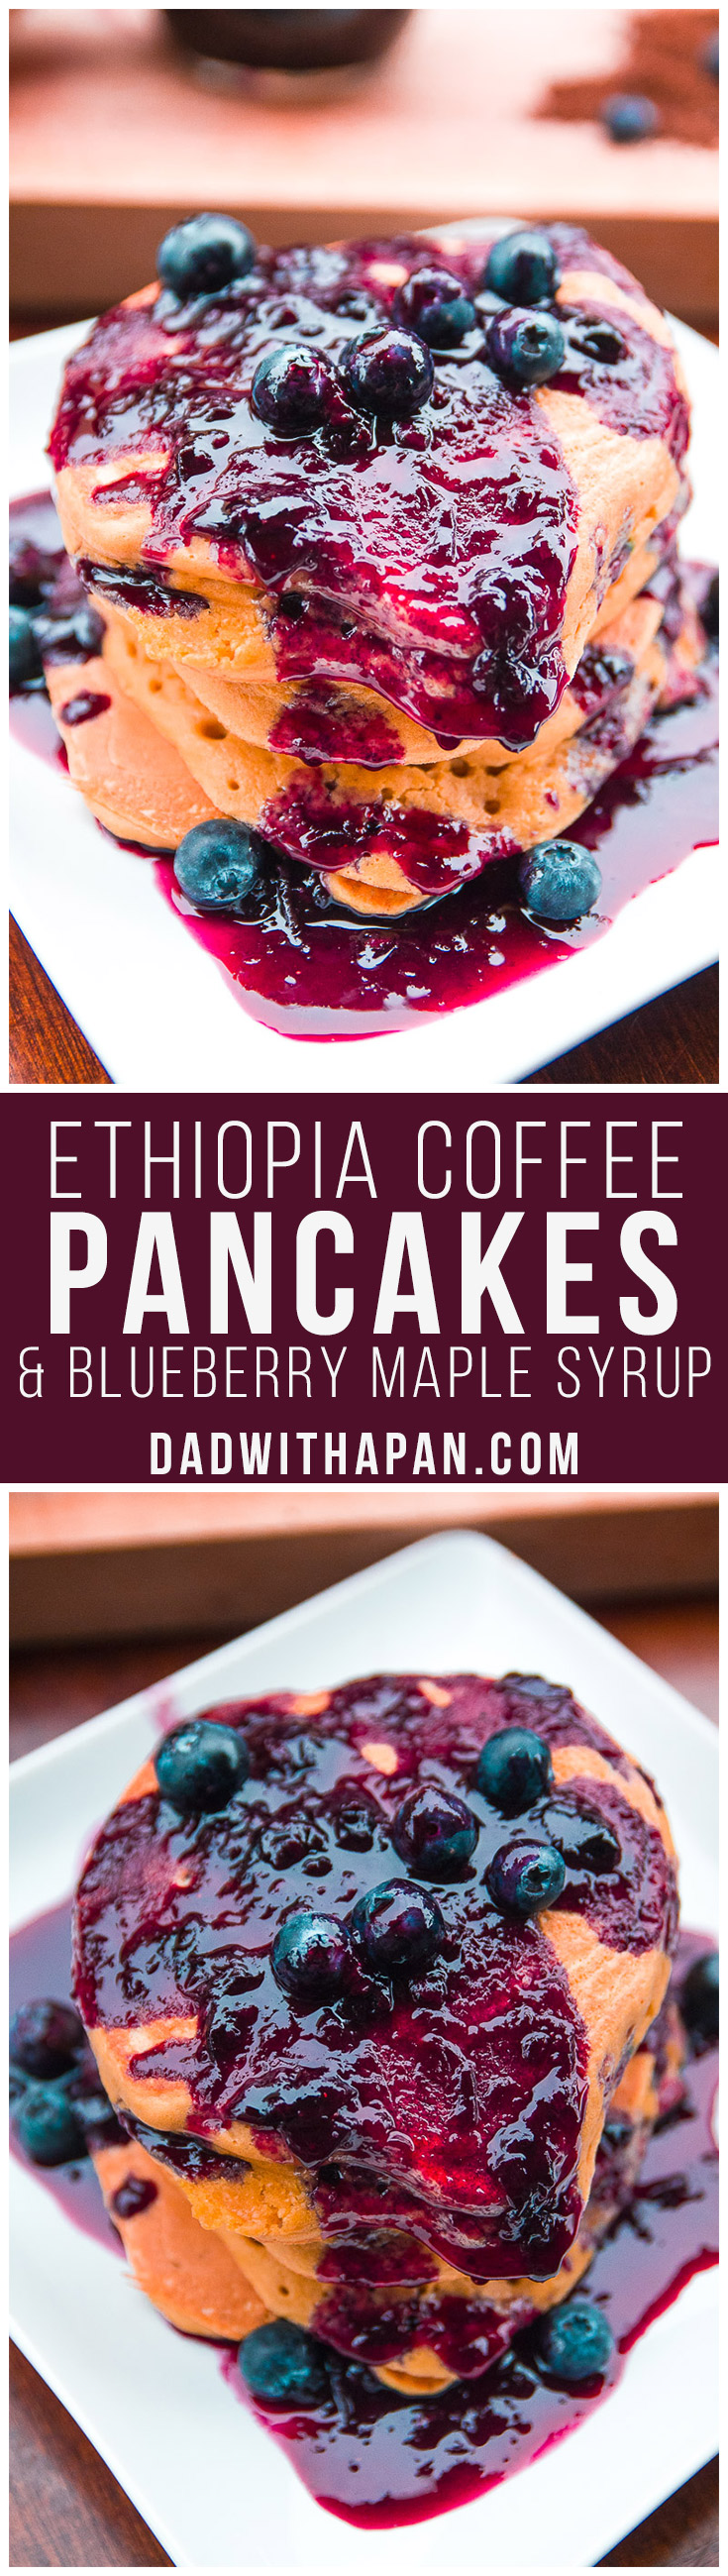 Ethiopia Coffee Pancakes With Blueberry Maple Syrup